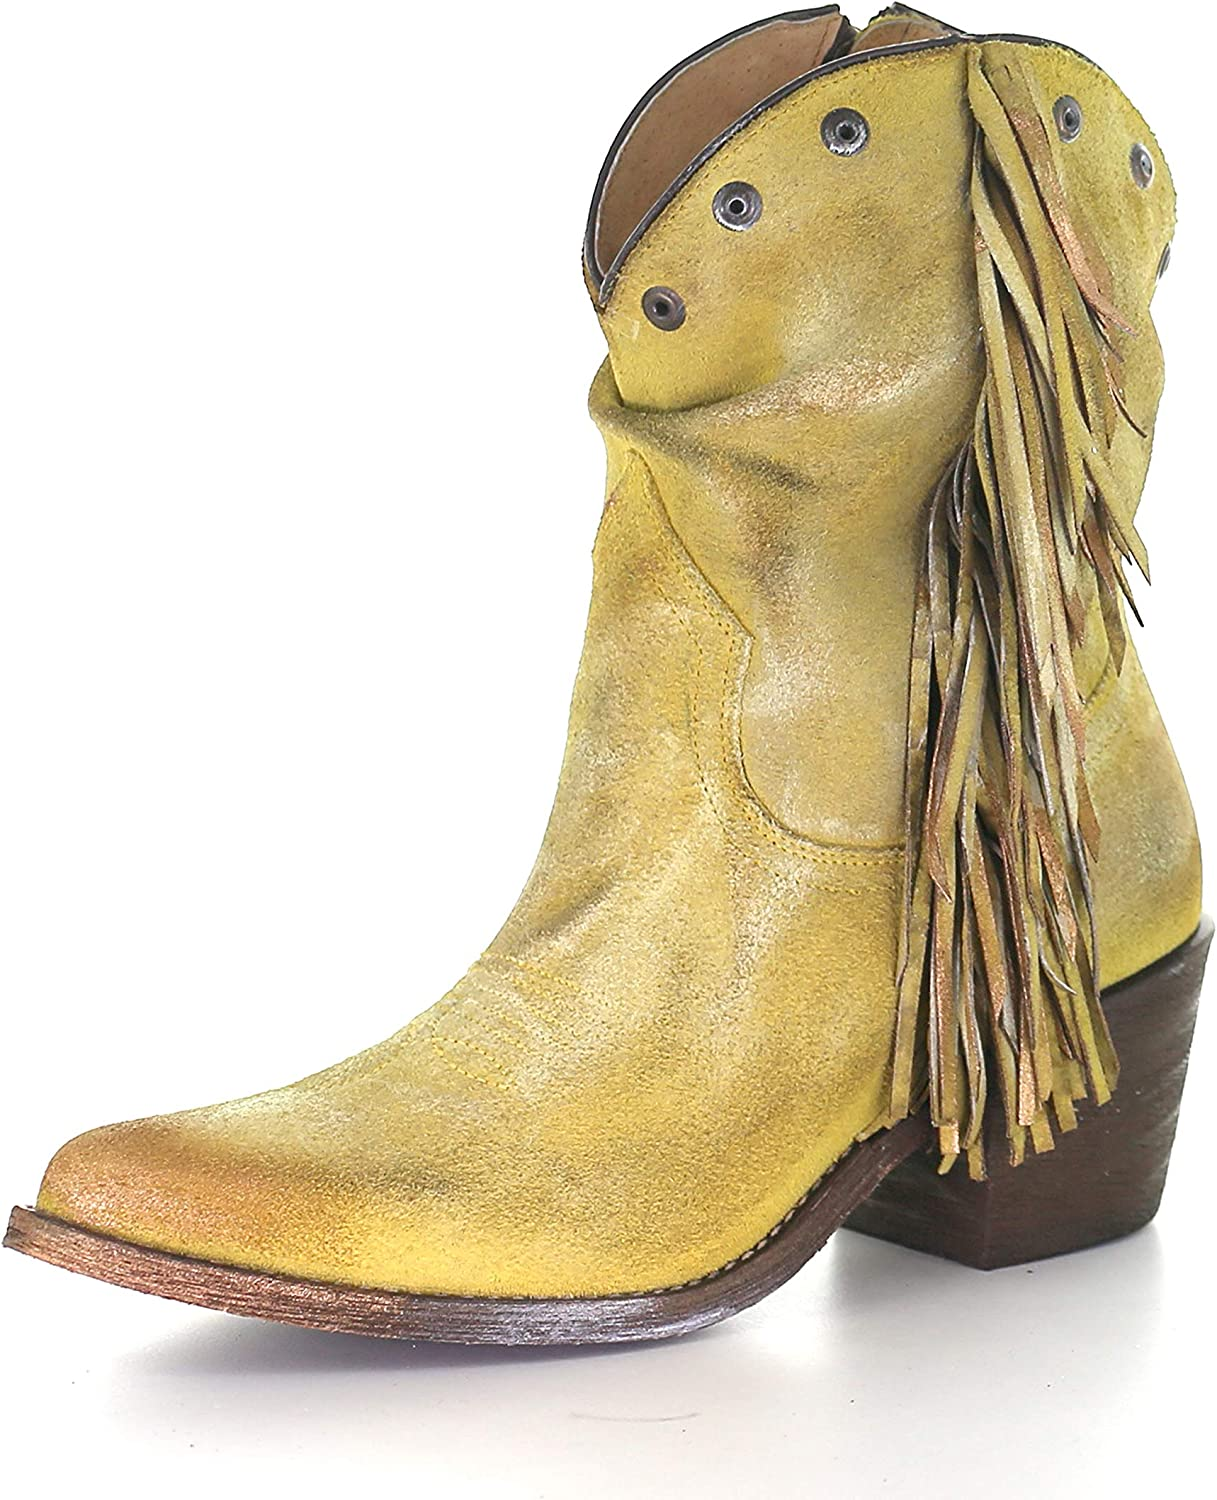 Corral Boots Yellow Stud And Fringe Ankle Boots Q0168